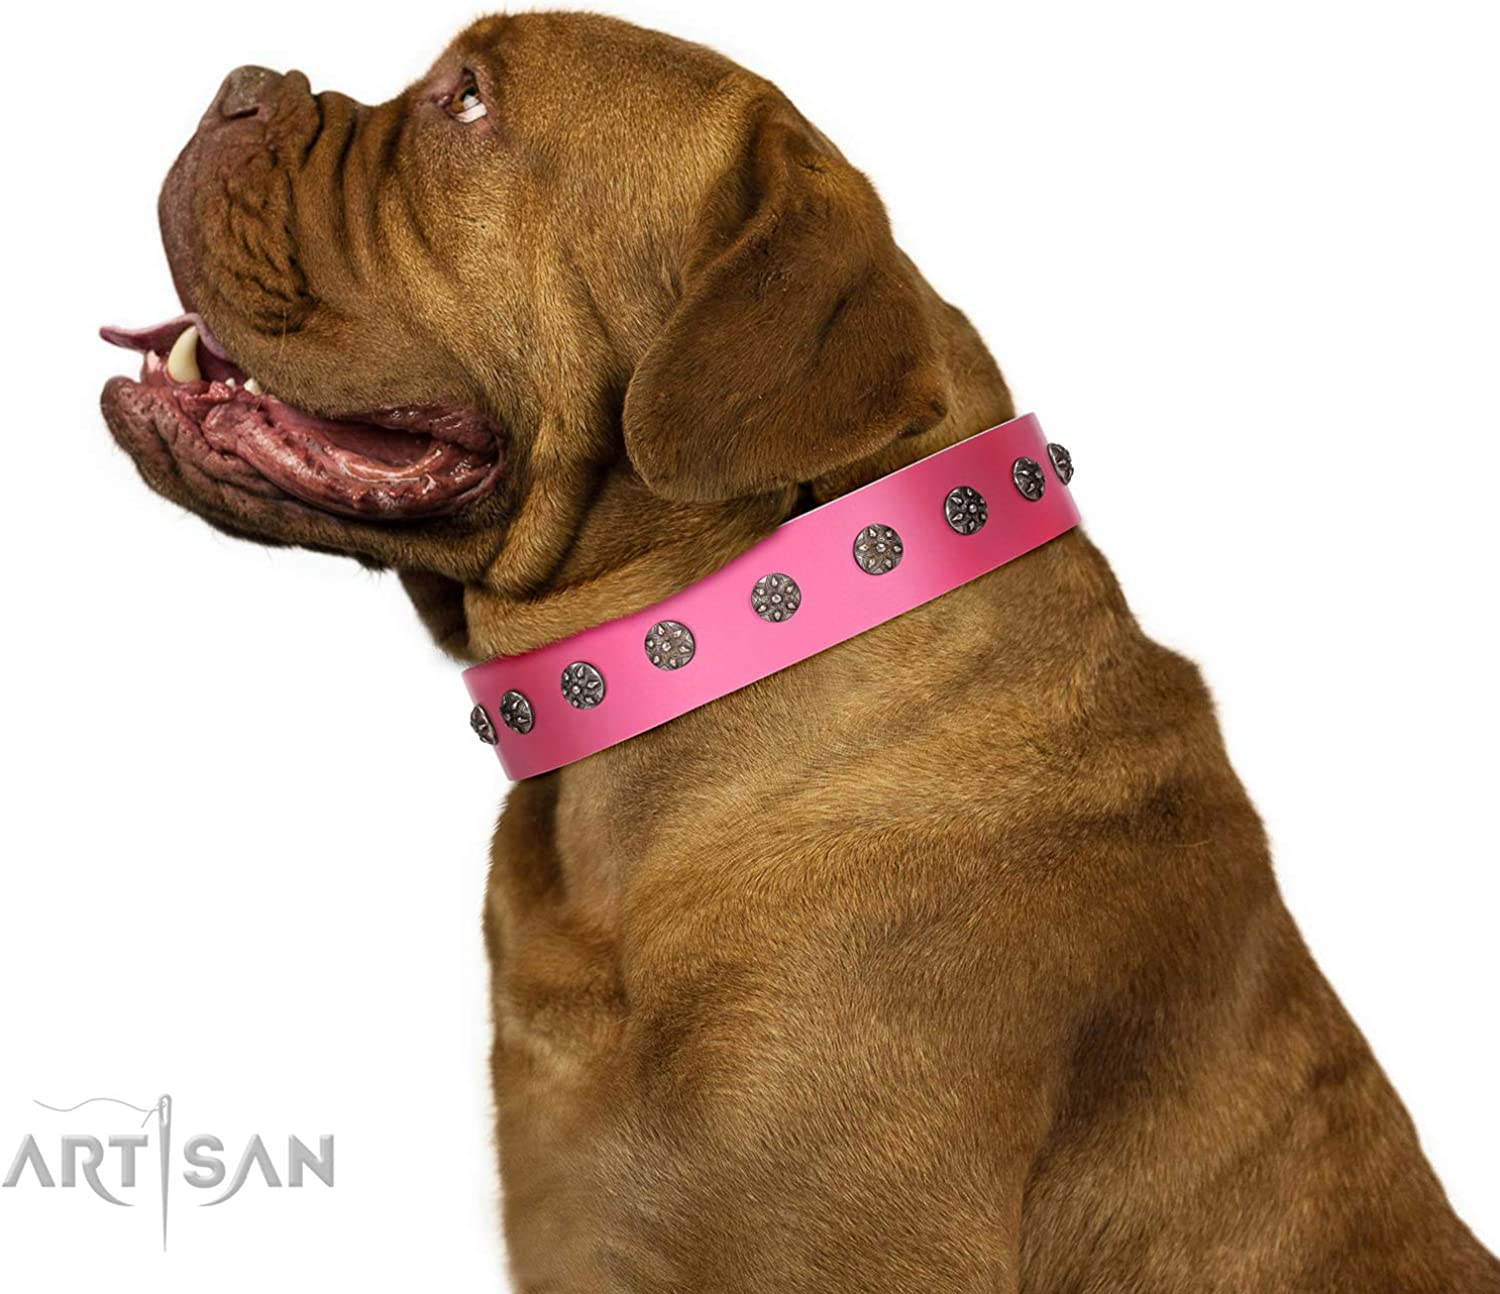 FDT Artisan 35 inch Pink Leather Dog Collar with SilverLike Flowers  Pink Blooming  1 1 2 inch (40 mm) Wide  Gift Box Included